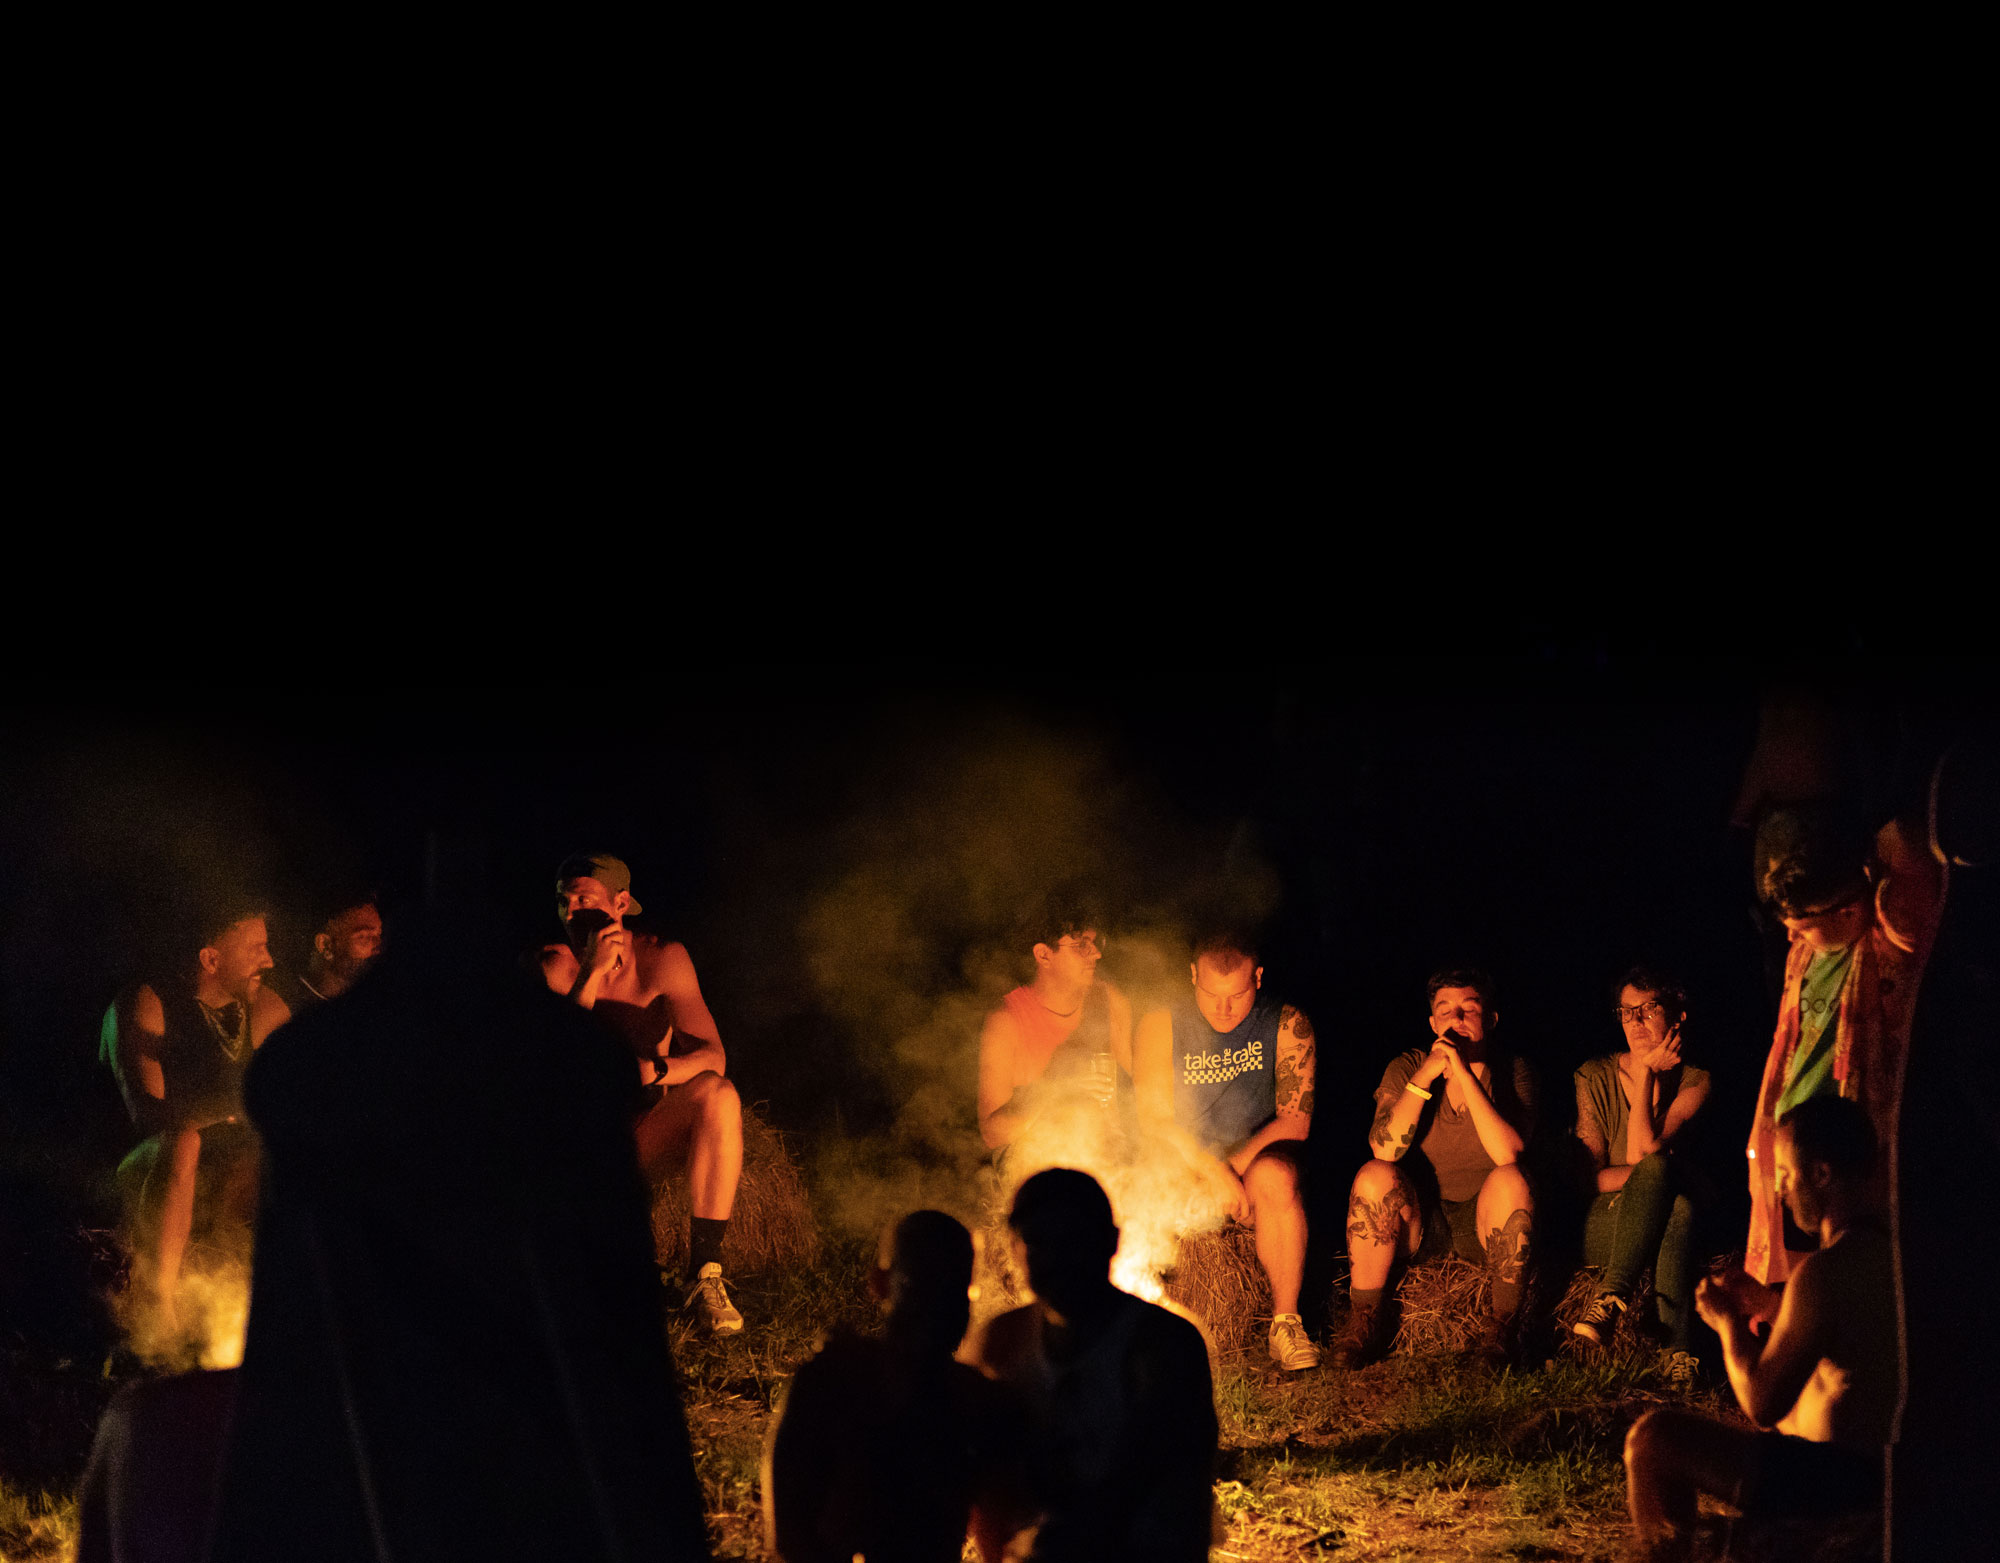 People sitting around a camp fire at night